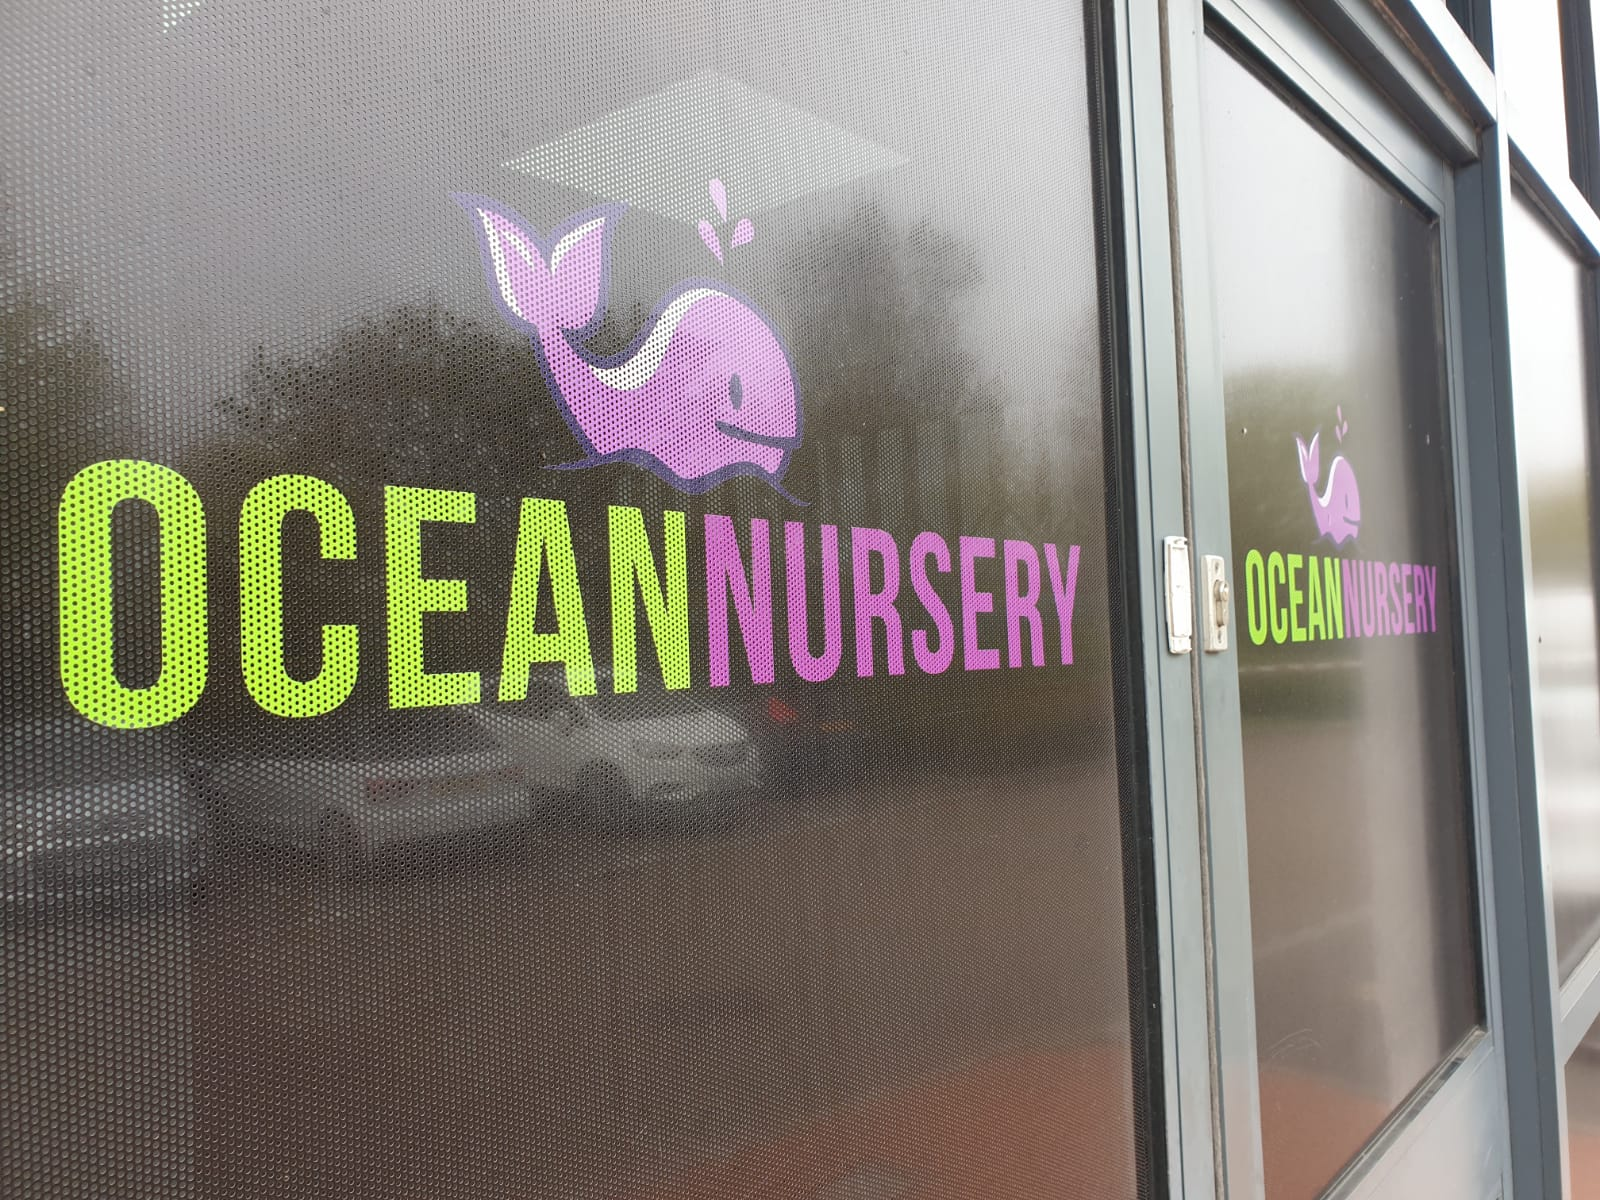 Nursery logo on the front door in Ocean Way